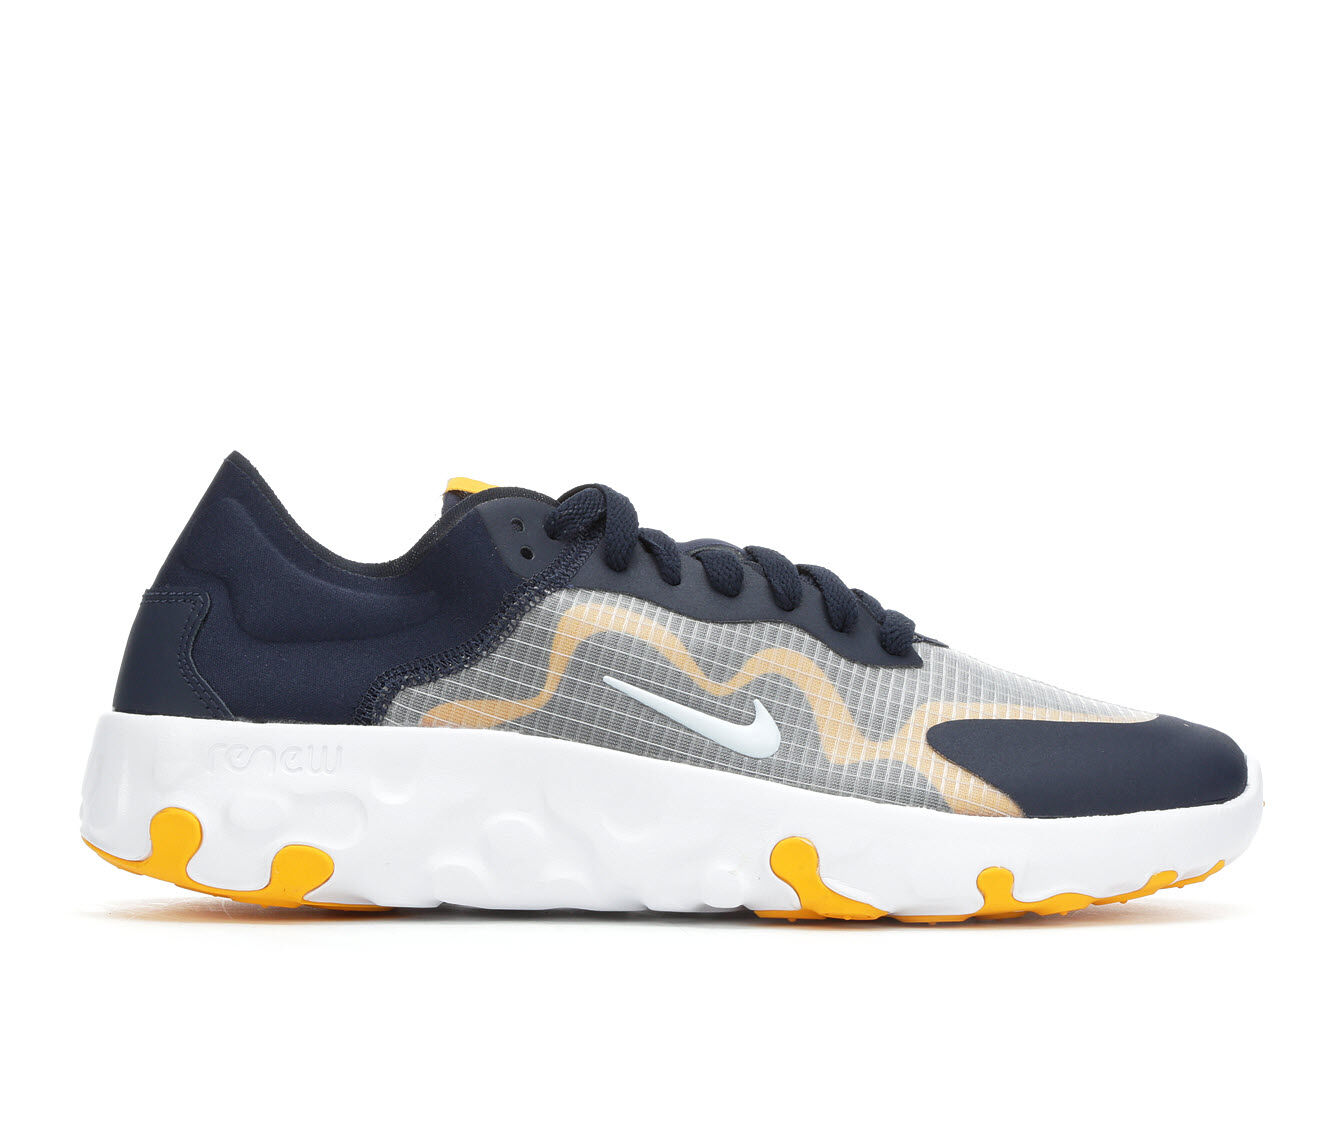 choose new style Men's Nike Rennew Lucent Sneakers Nvy/Wh/Nvy/Gold